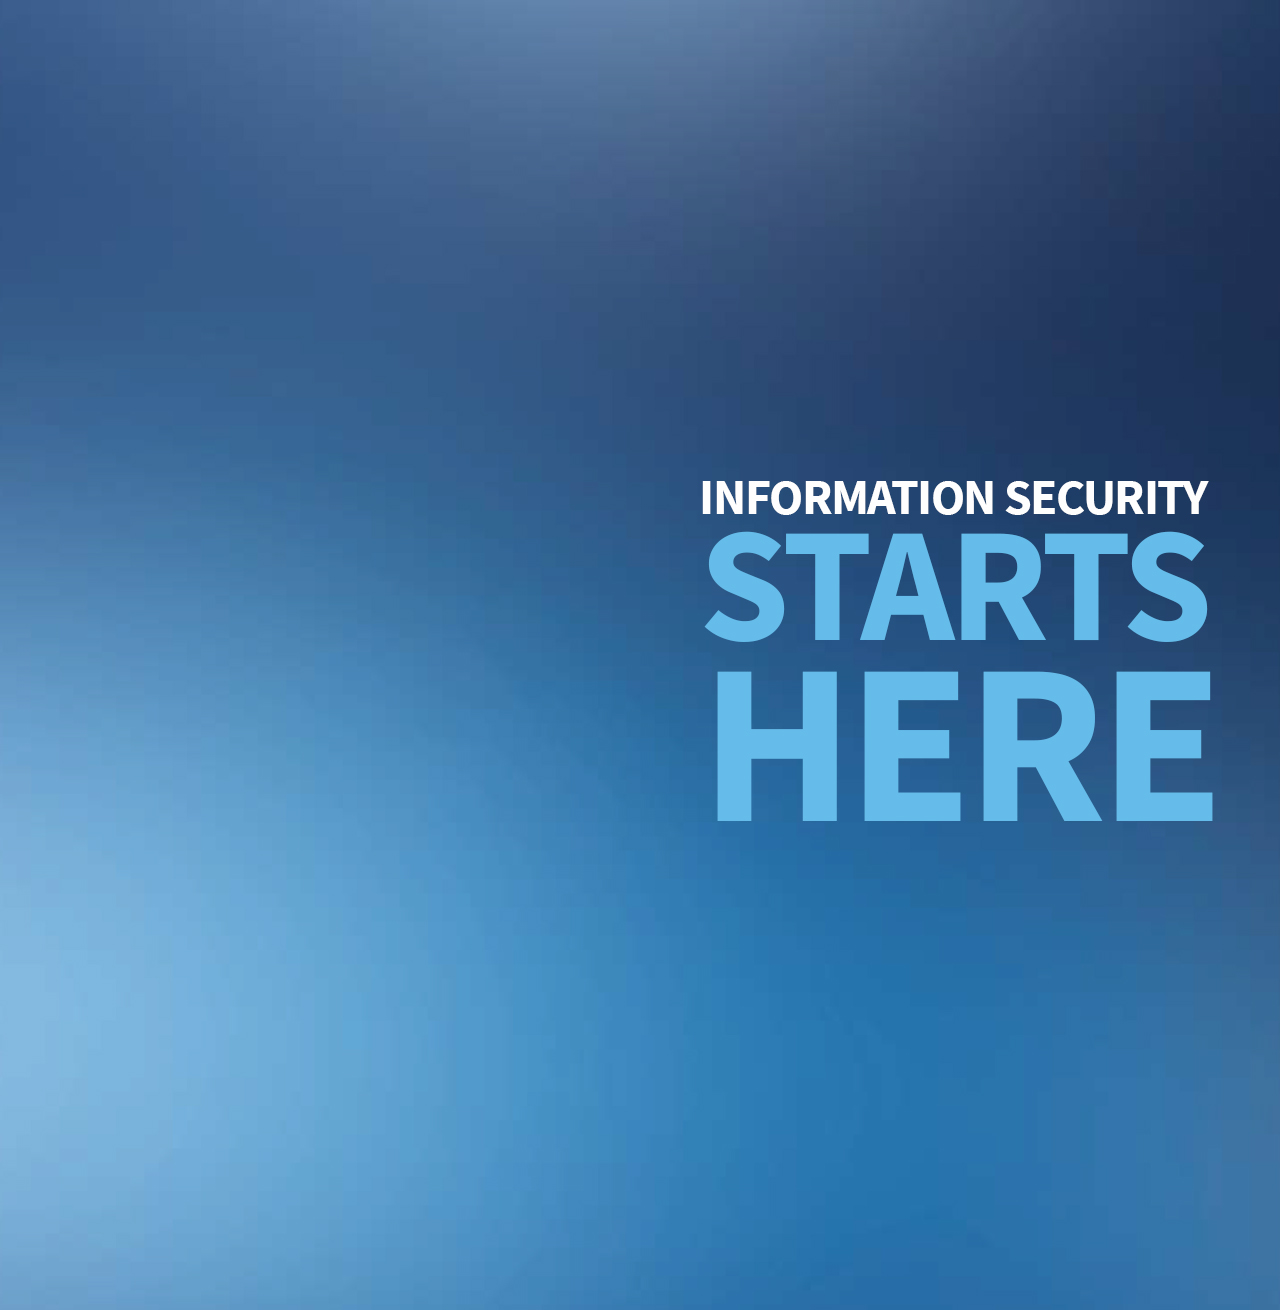 Information Security Starts Here